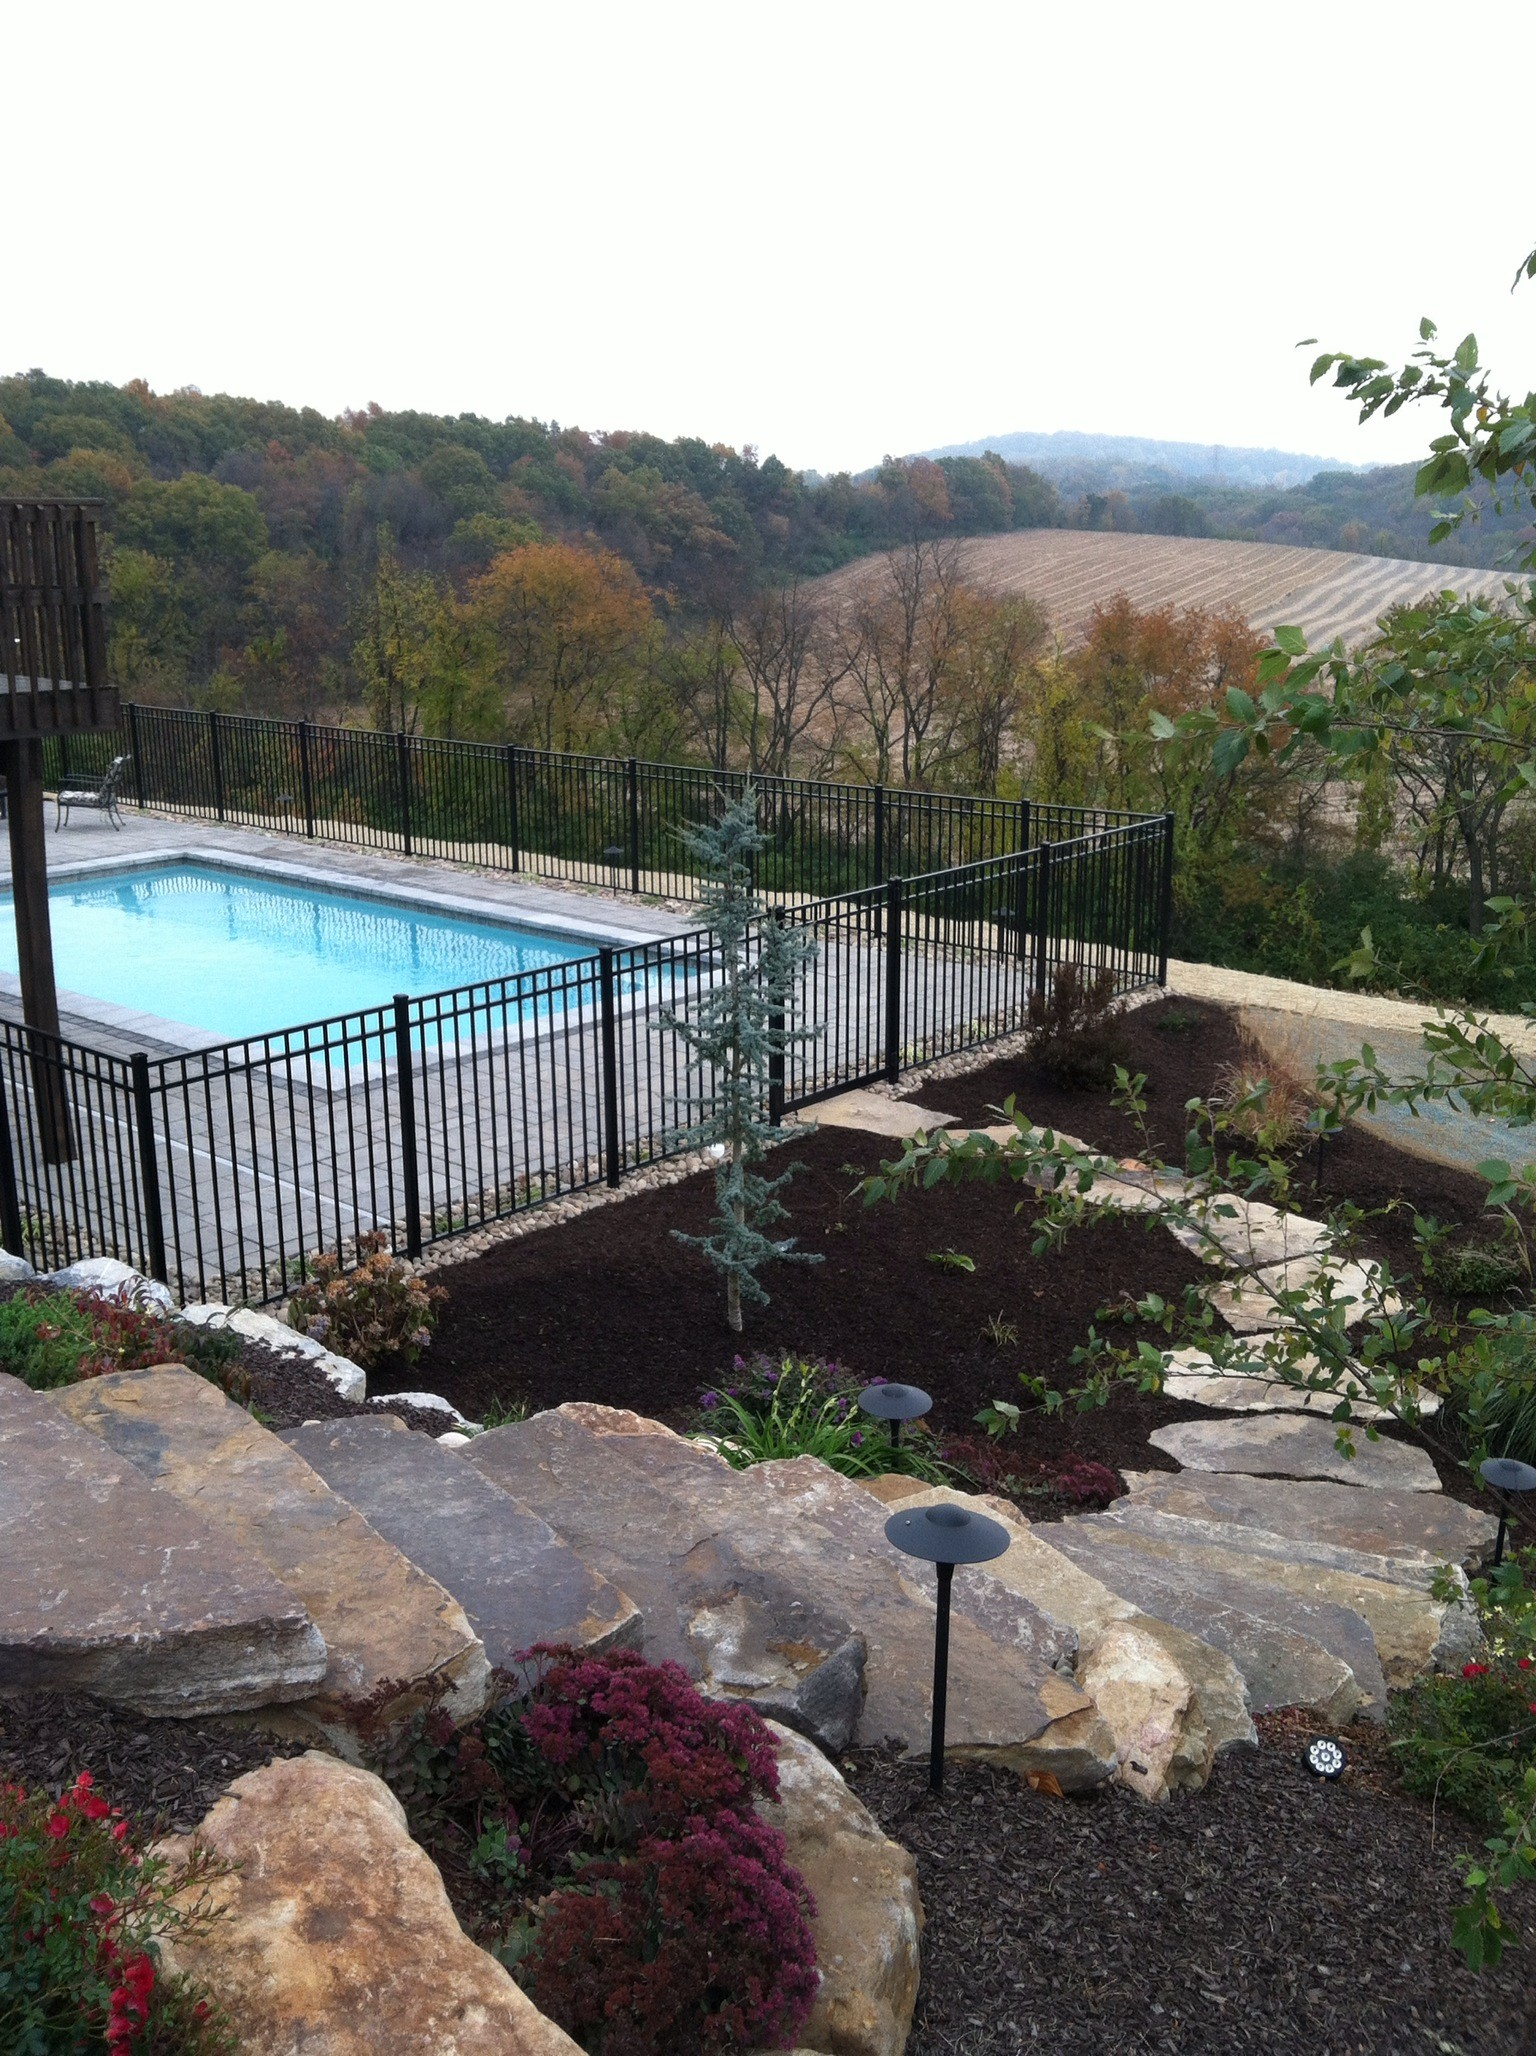 Top landscape design with outdoor lighting in Lebanon County, PA